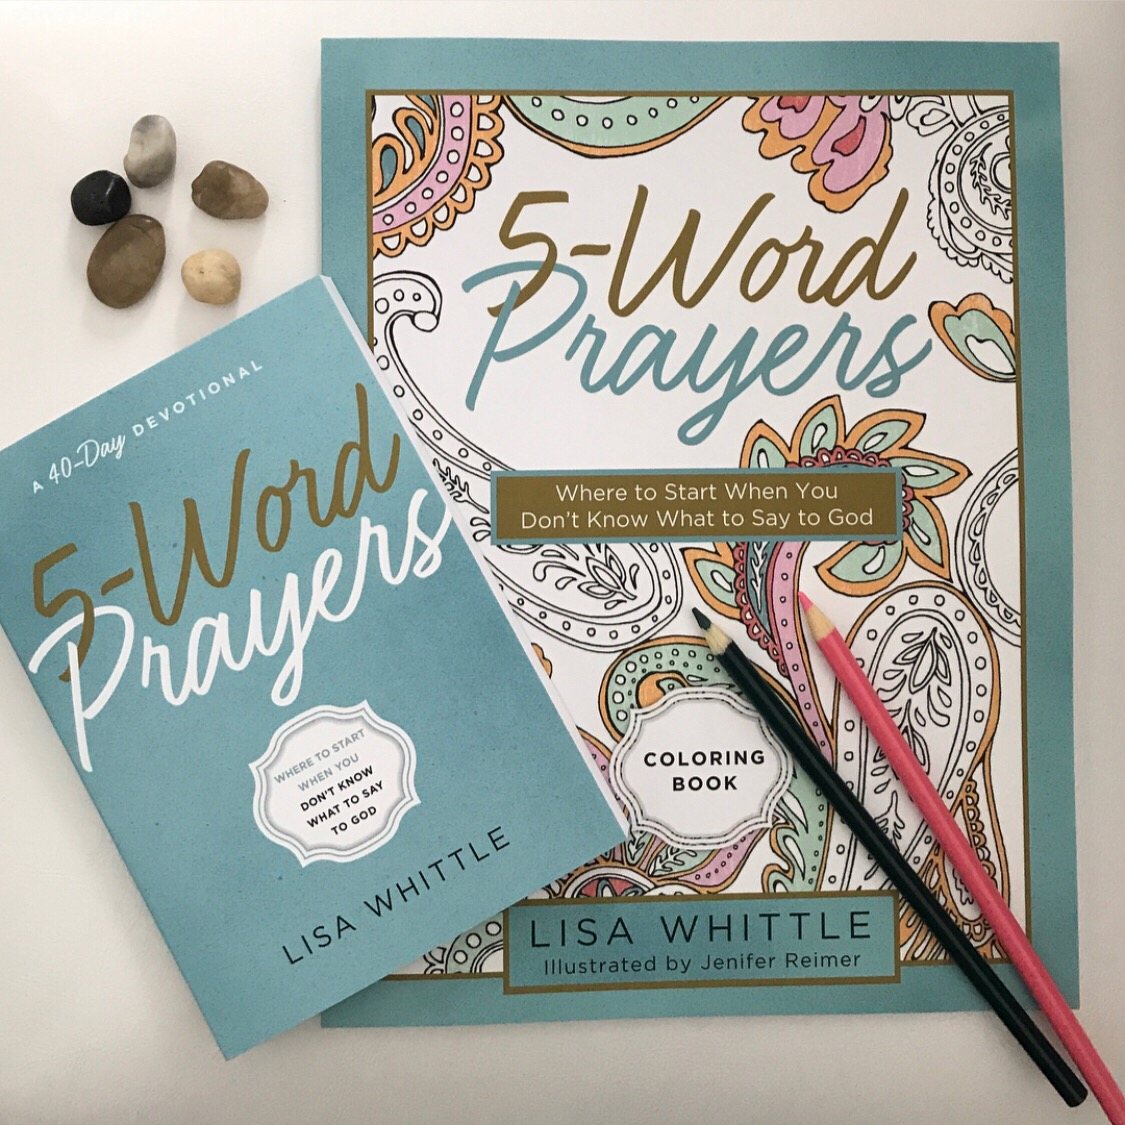 5-Word Prayers: Where to Start When You Don't Know What to Say to God